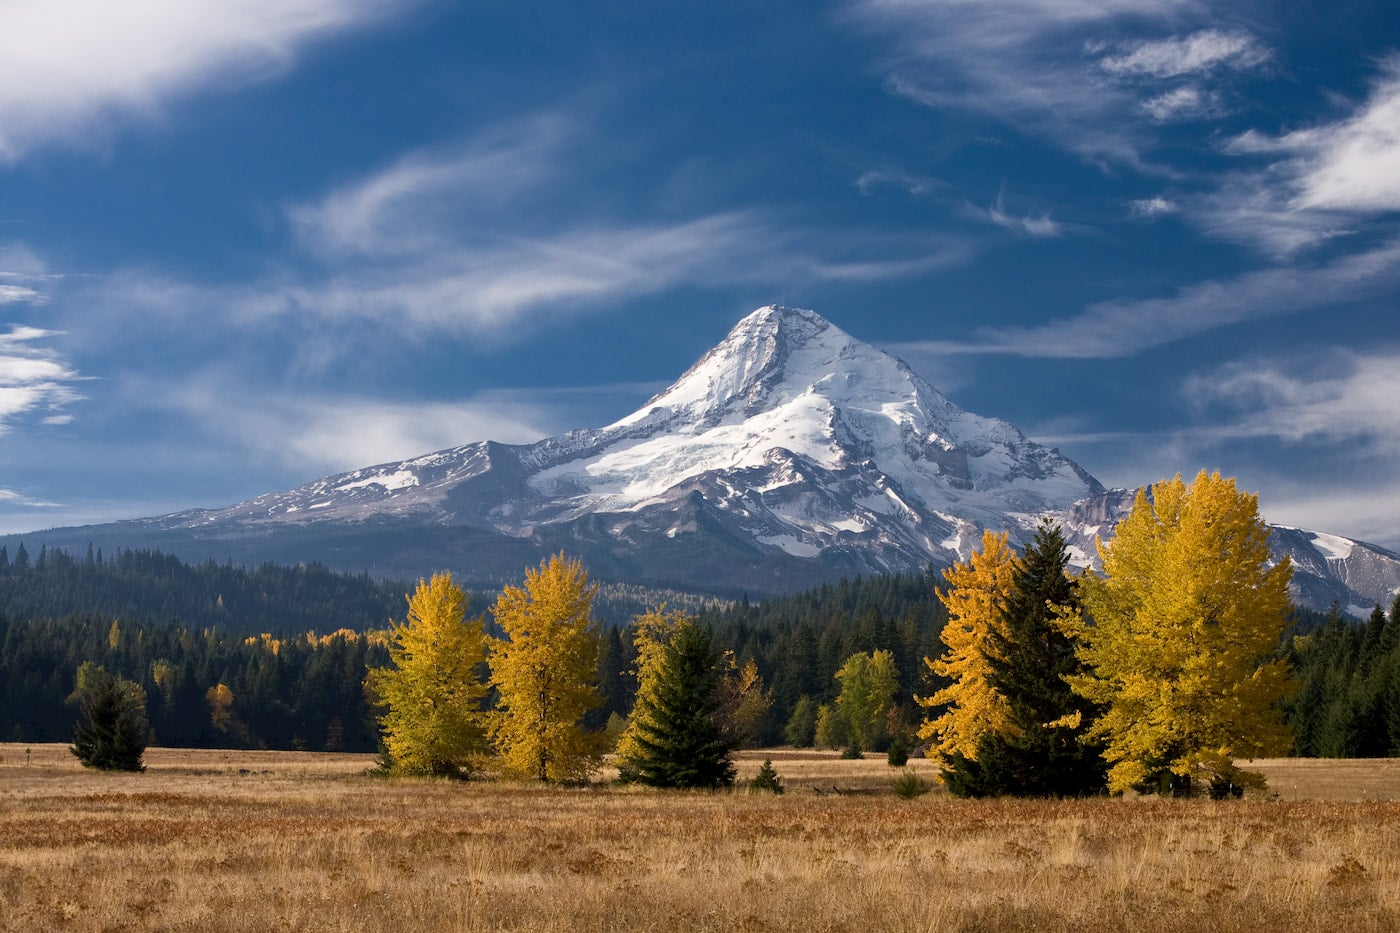 Yellow fall foliage on trees in the foreground, snow capped Mt. Hood in the background.